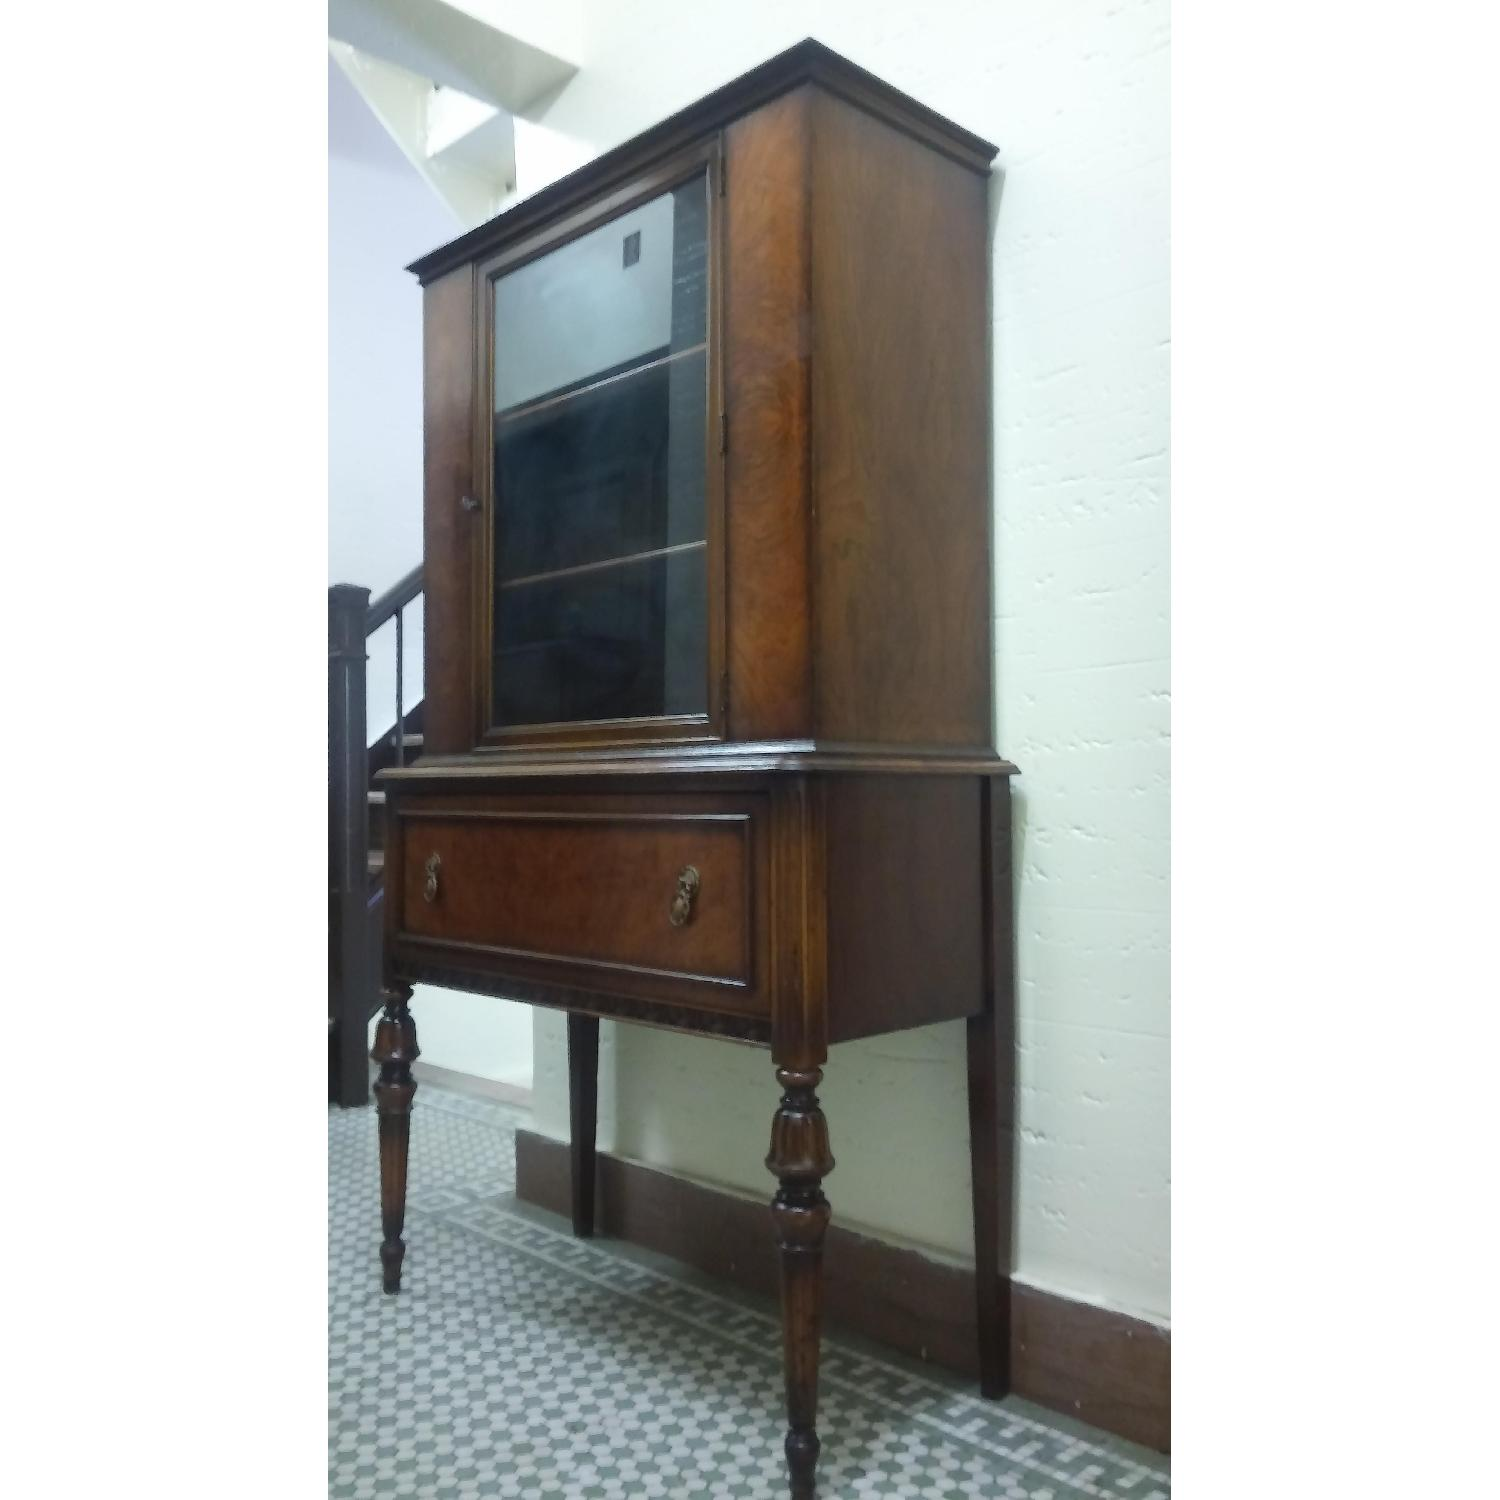 Berkey and Gay Furniture Antique China Cabinet - image-1